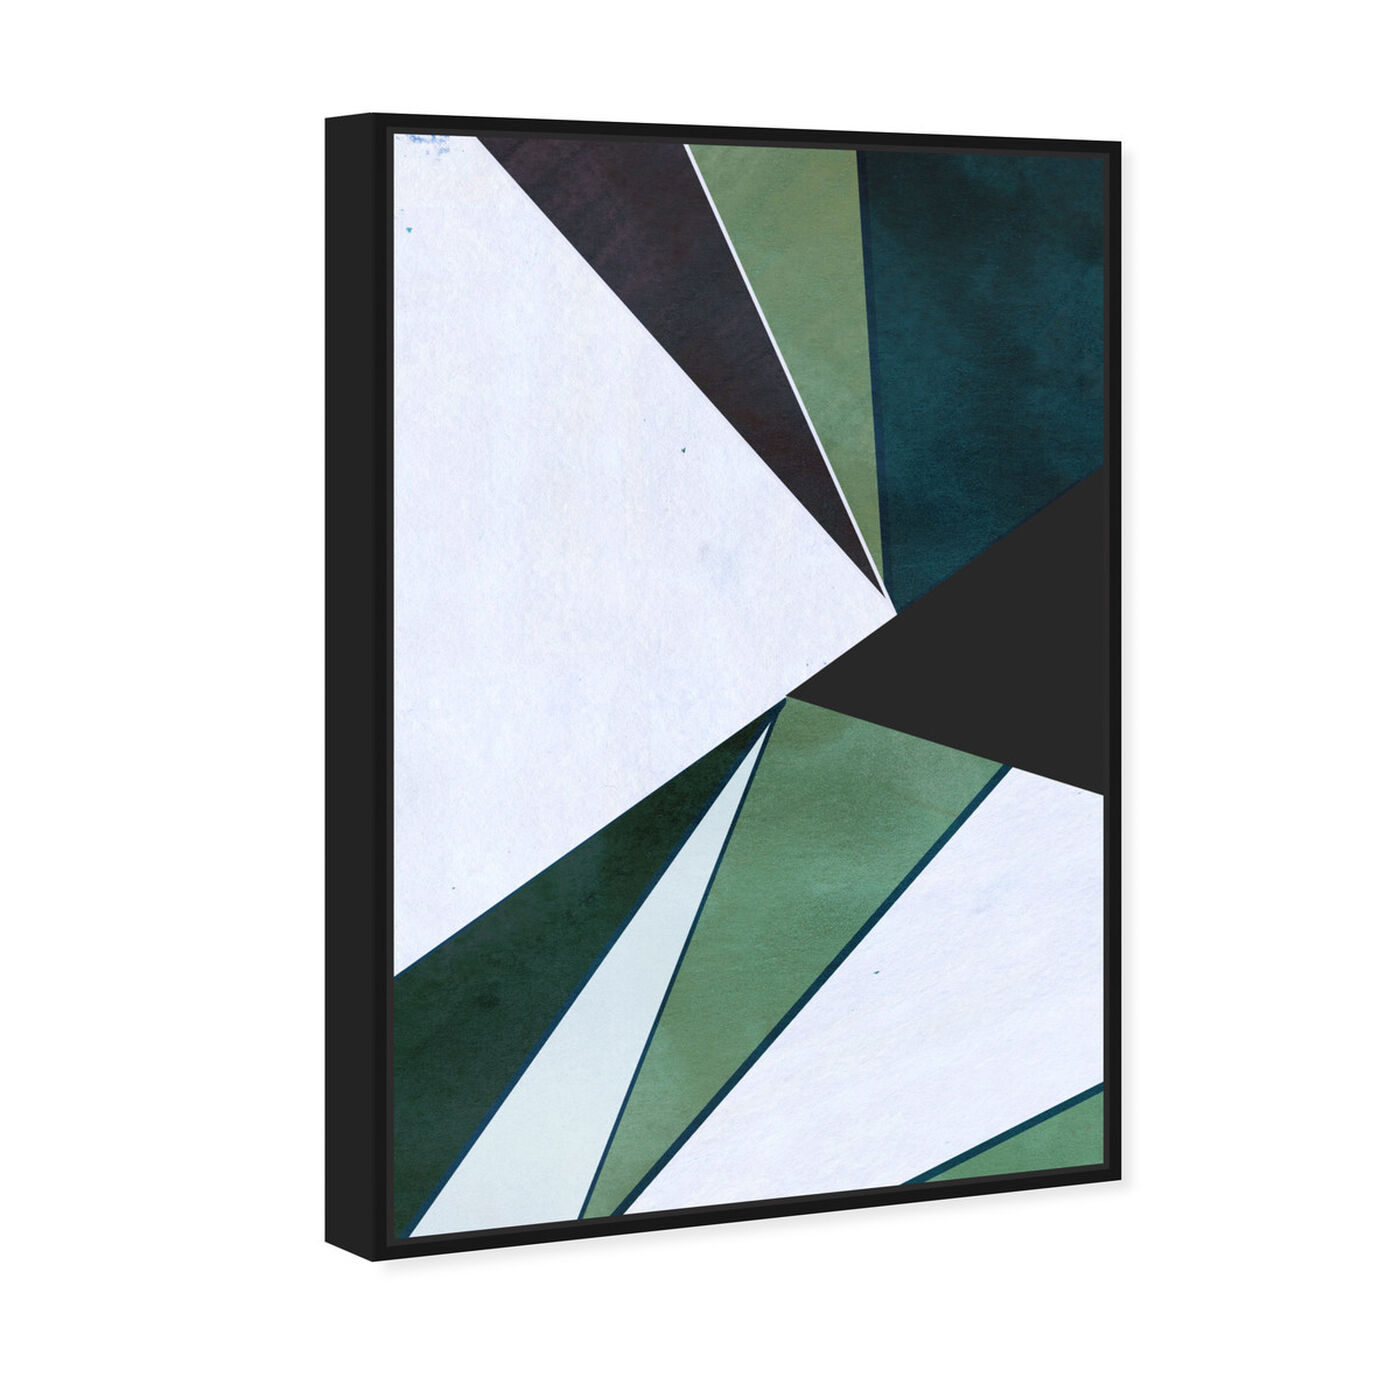 Angled view of Opium Duo featuring abstract and geometric art.